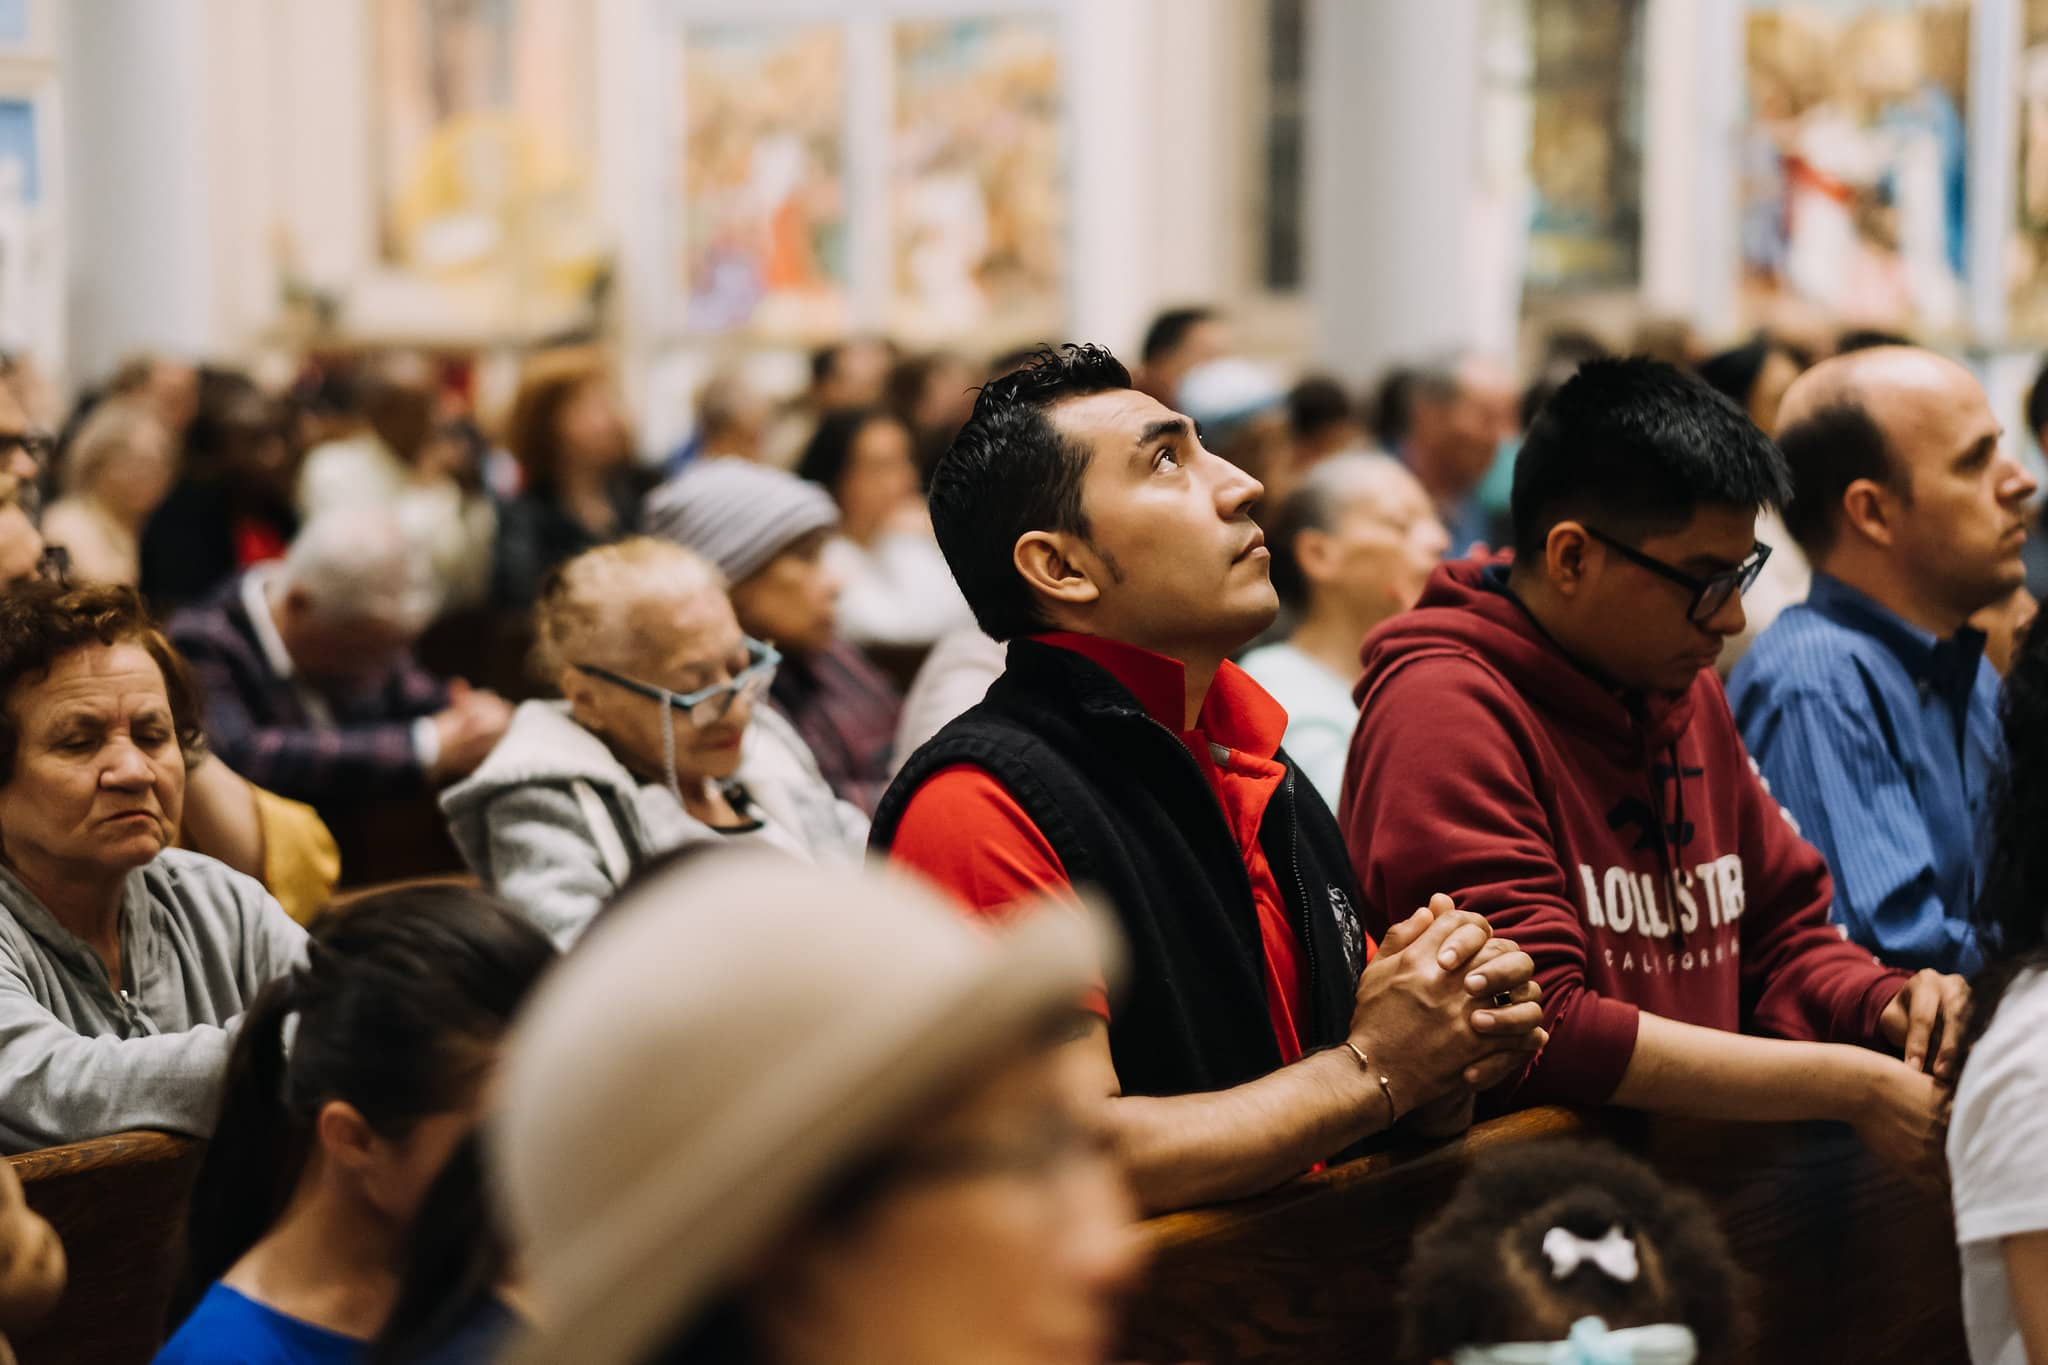 prayer-pew-hands-faith-community-st-francis-de-sales-church-new-york-city.jpg